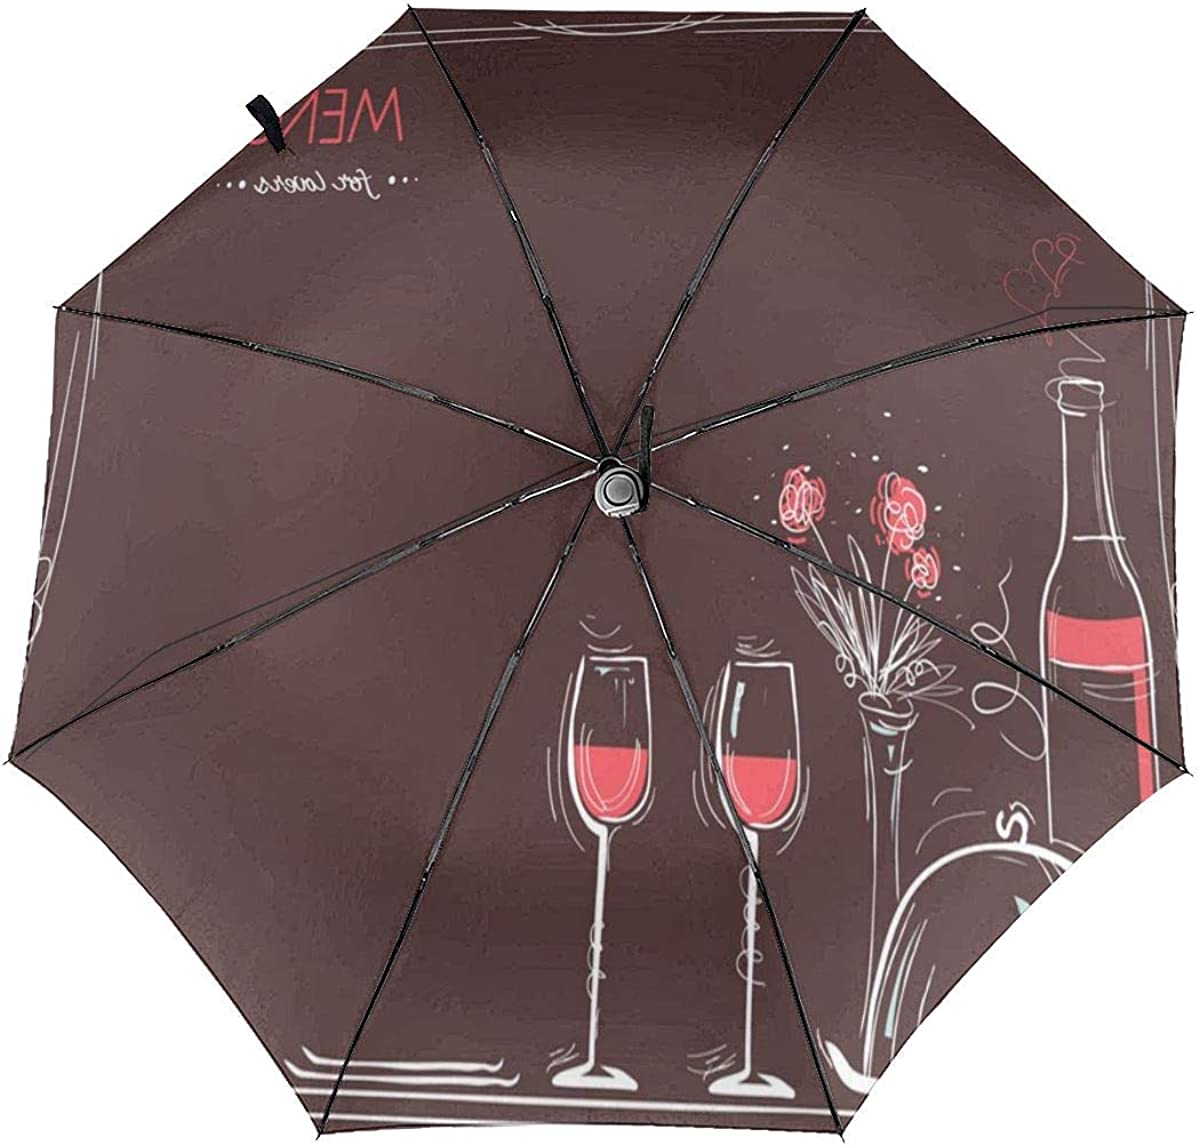 Menu Card For LoversLove Card Romantic Dinner Compact Travel Umbrella Windproof Reinforced Canopy 8 Ribs Umbrella Auto Open And Close Button Personalized